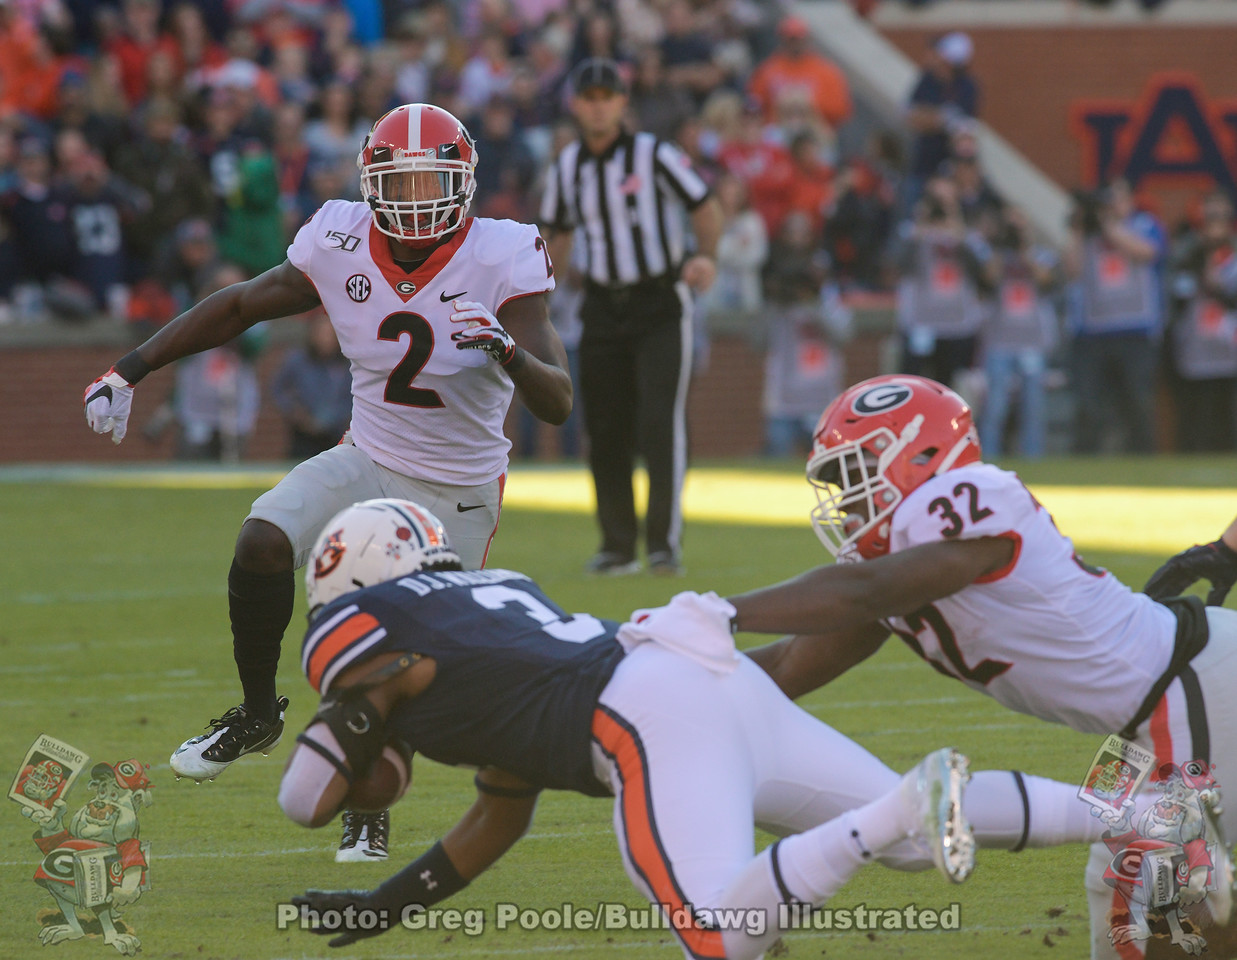 Richard LeCounte (2) and Monty Rice (32), Georgia vs. Auburn, Saturday, November 16, 2019